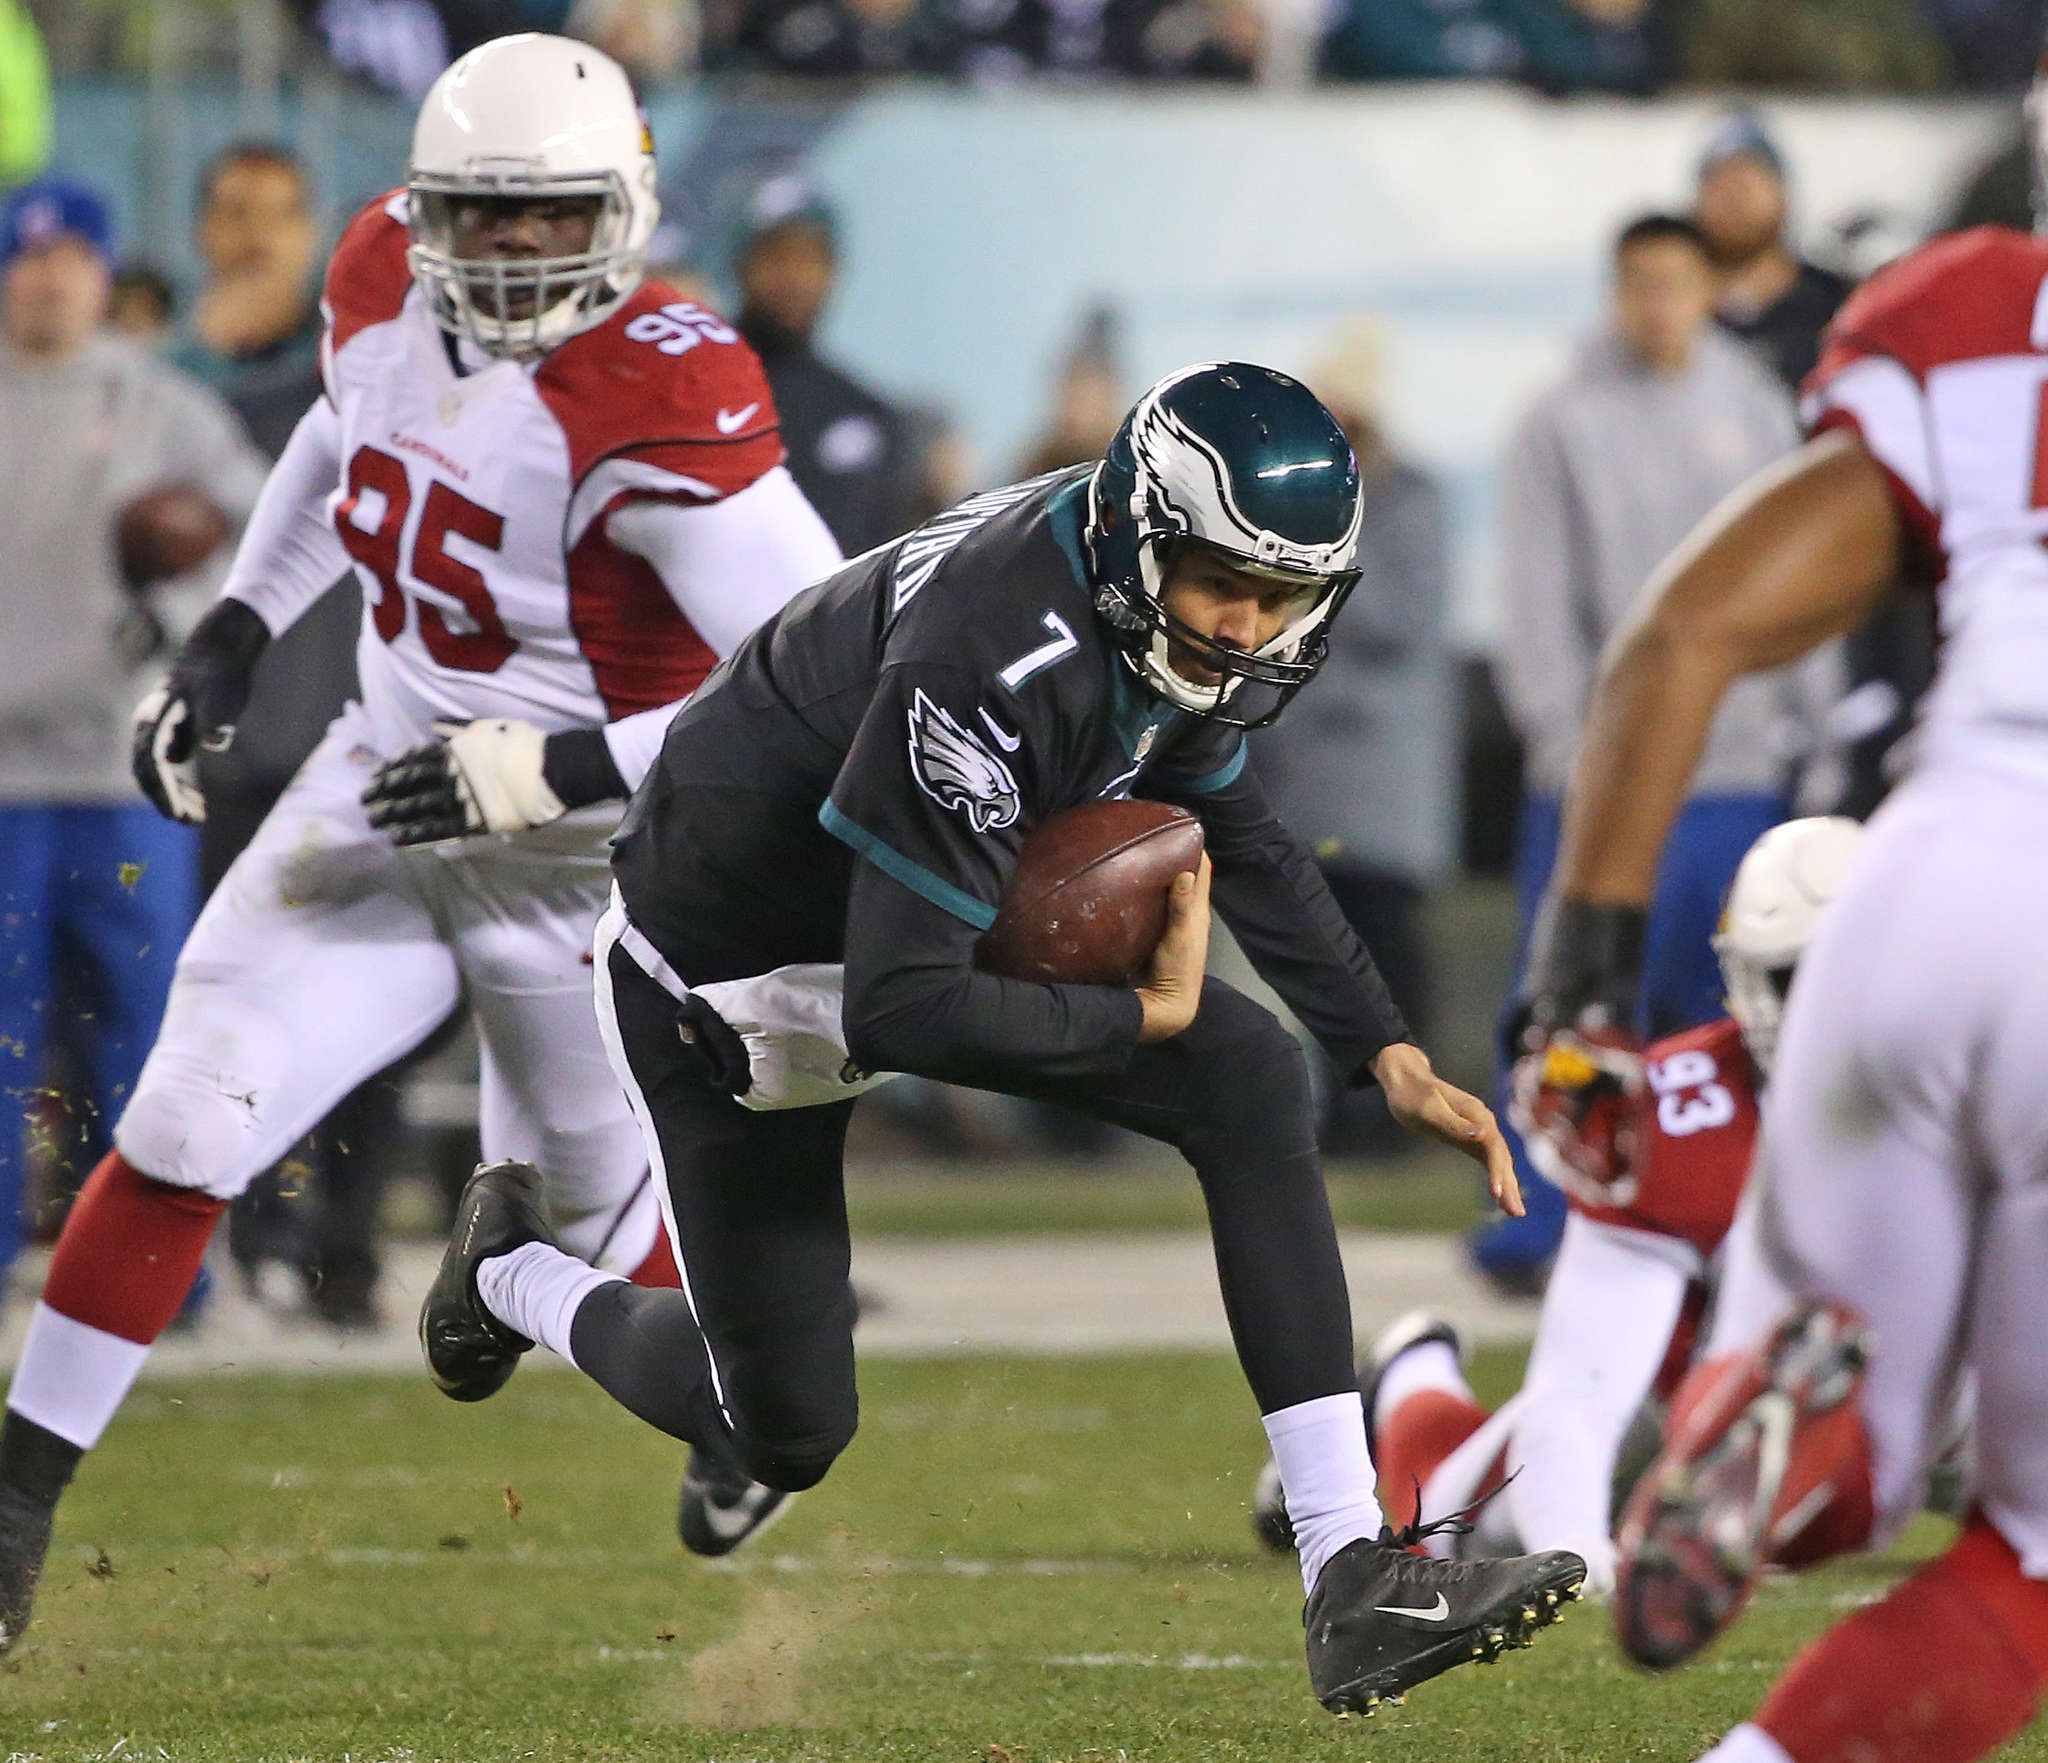 Sam Bradford scrambling against the Cardinals. The QB can become a free agent if the Eagles don´t put the franchise tag on him. He just might decide to move on.